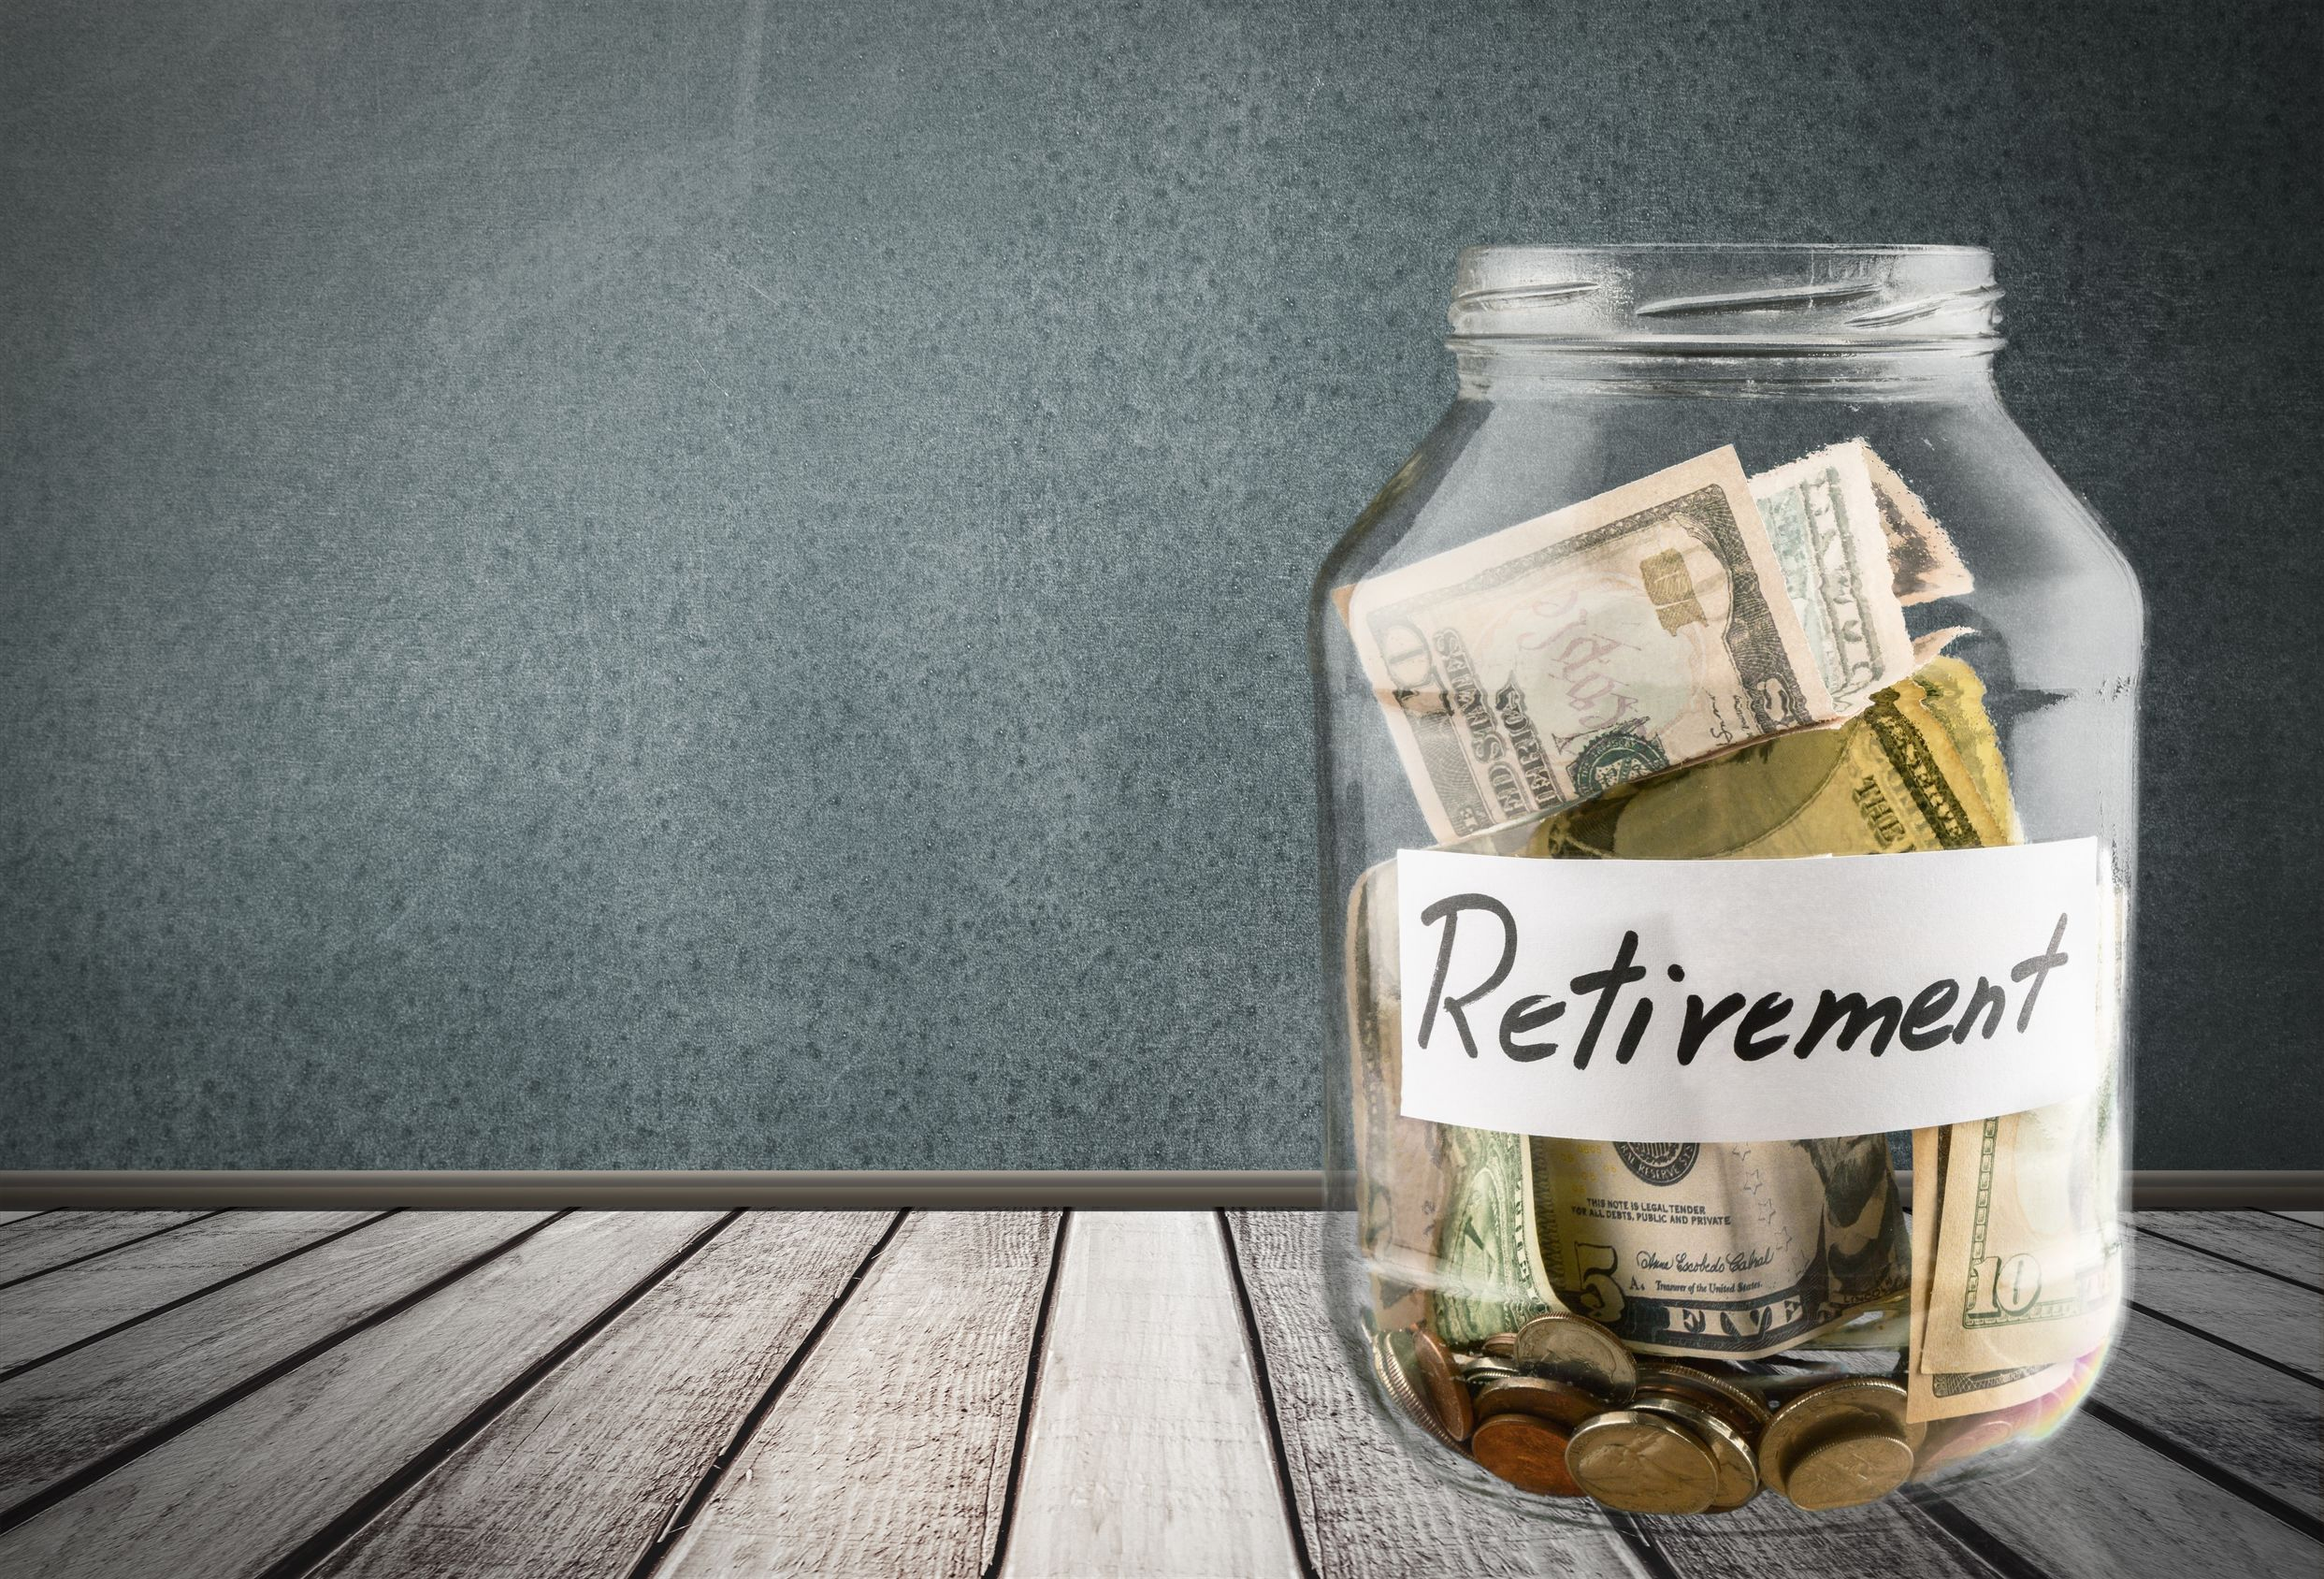 Super-priority in pension insolvencies would negatively affect retirement system: PIAC